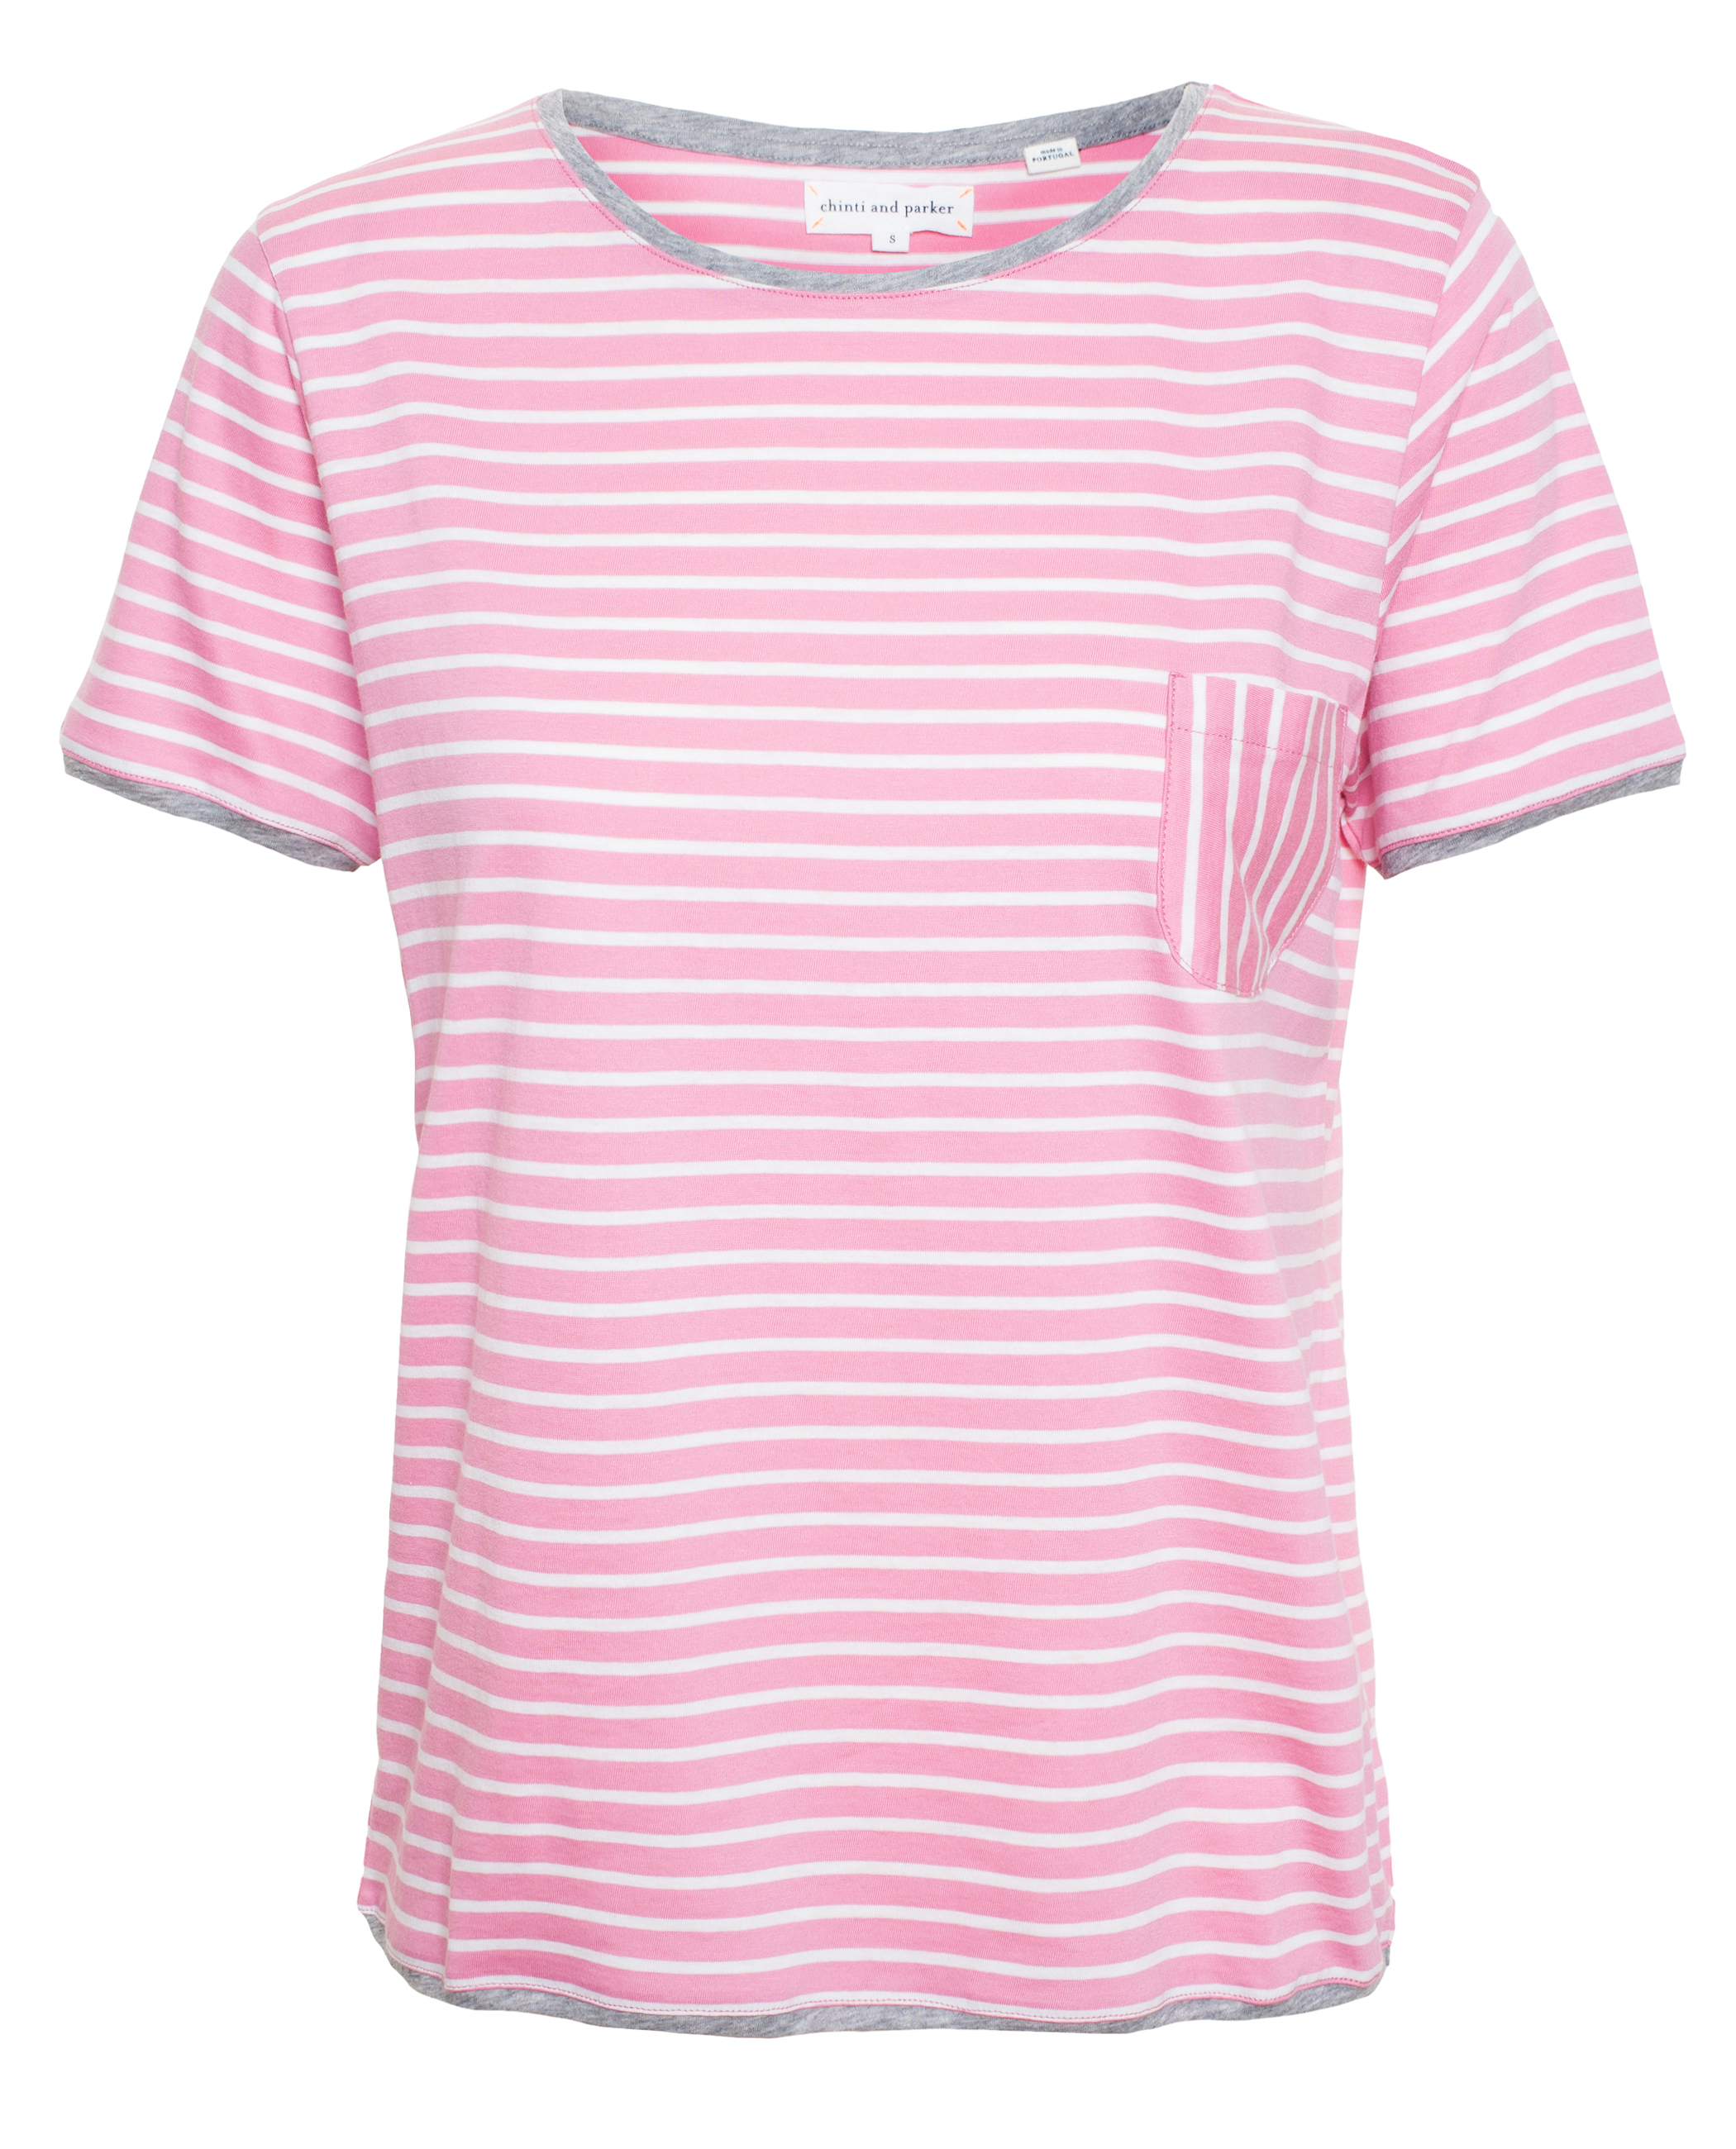 Chinti parker striped t shirt in pink lyst for Pink white striped shirt